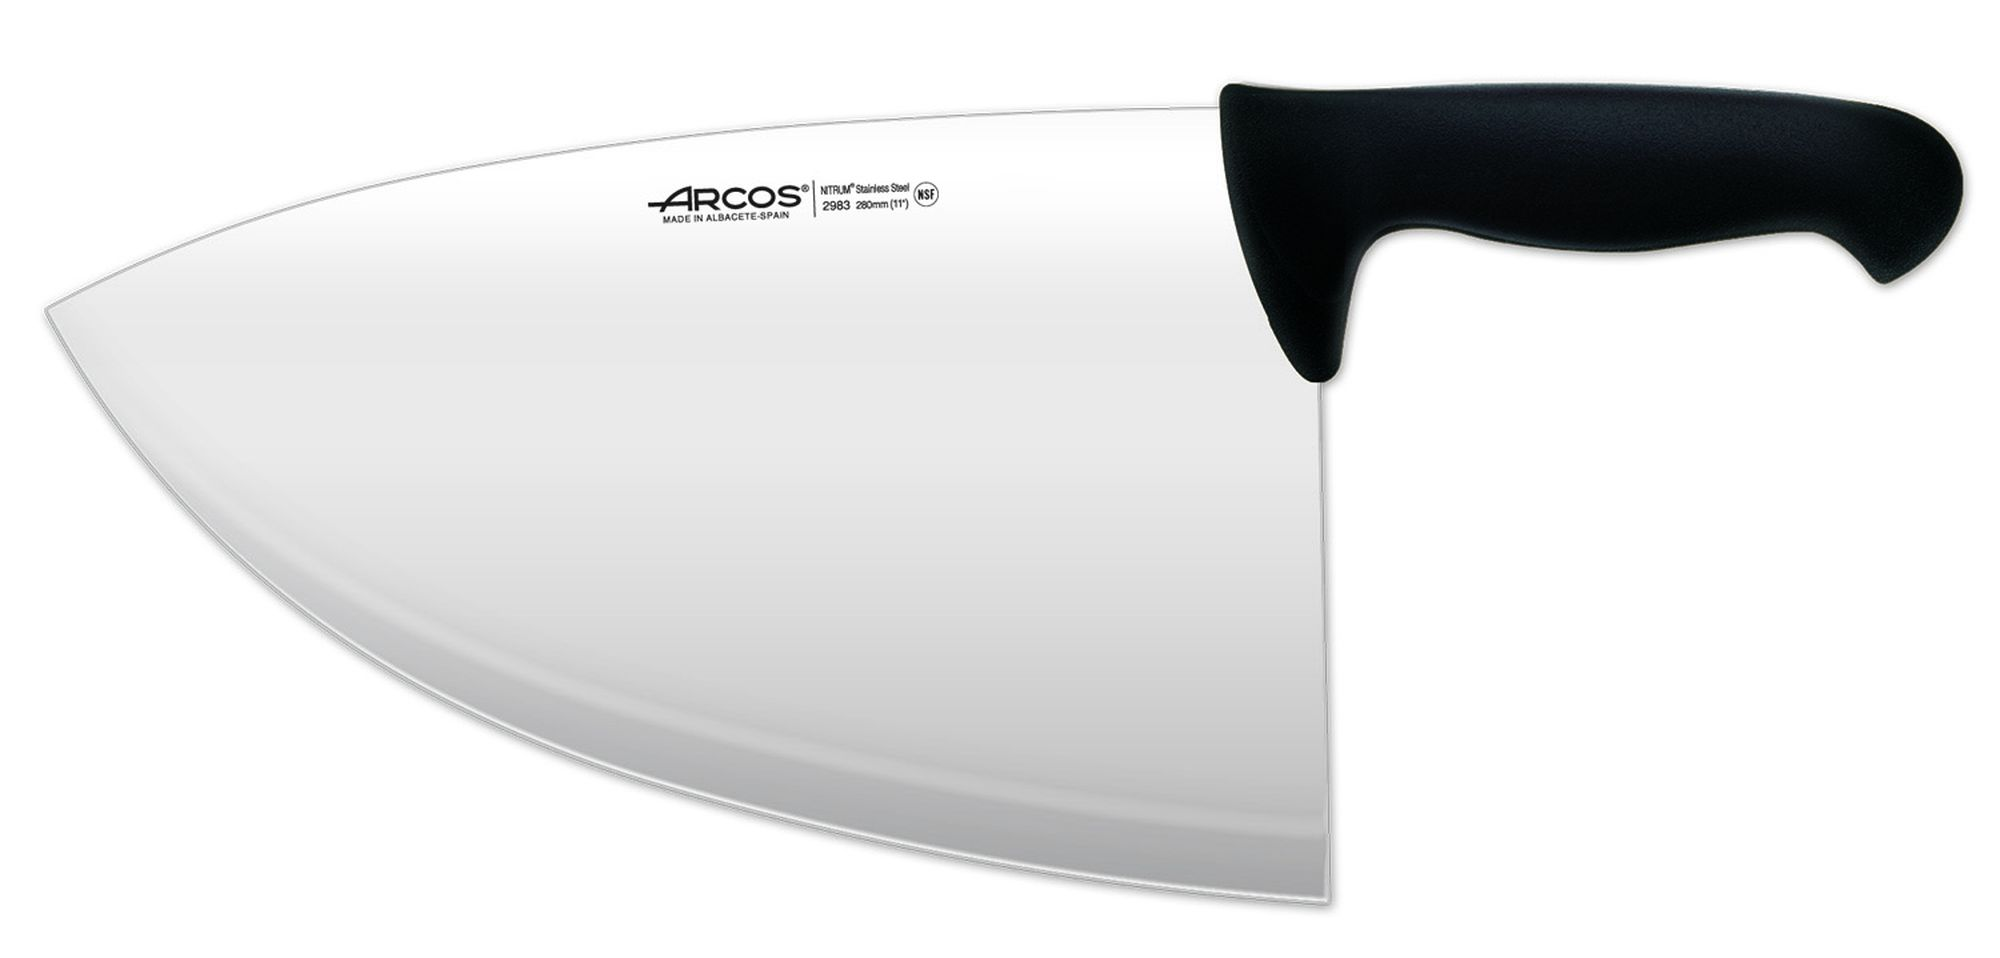 Cleaver Arcos ref.: 298325